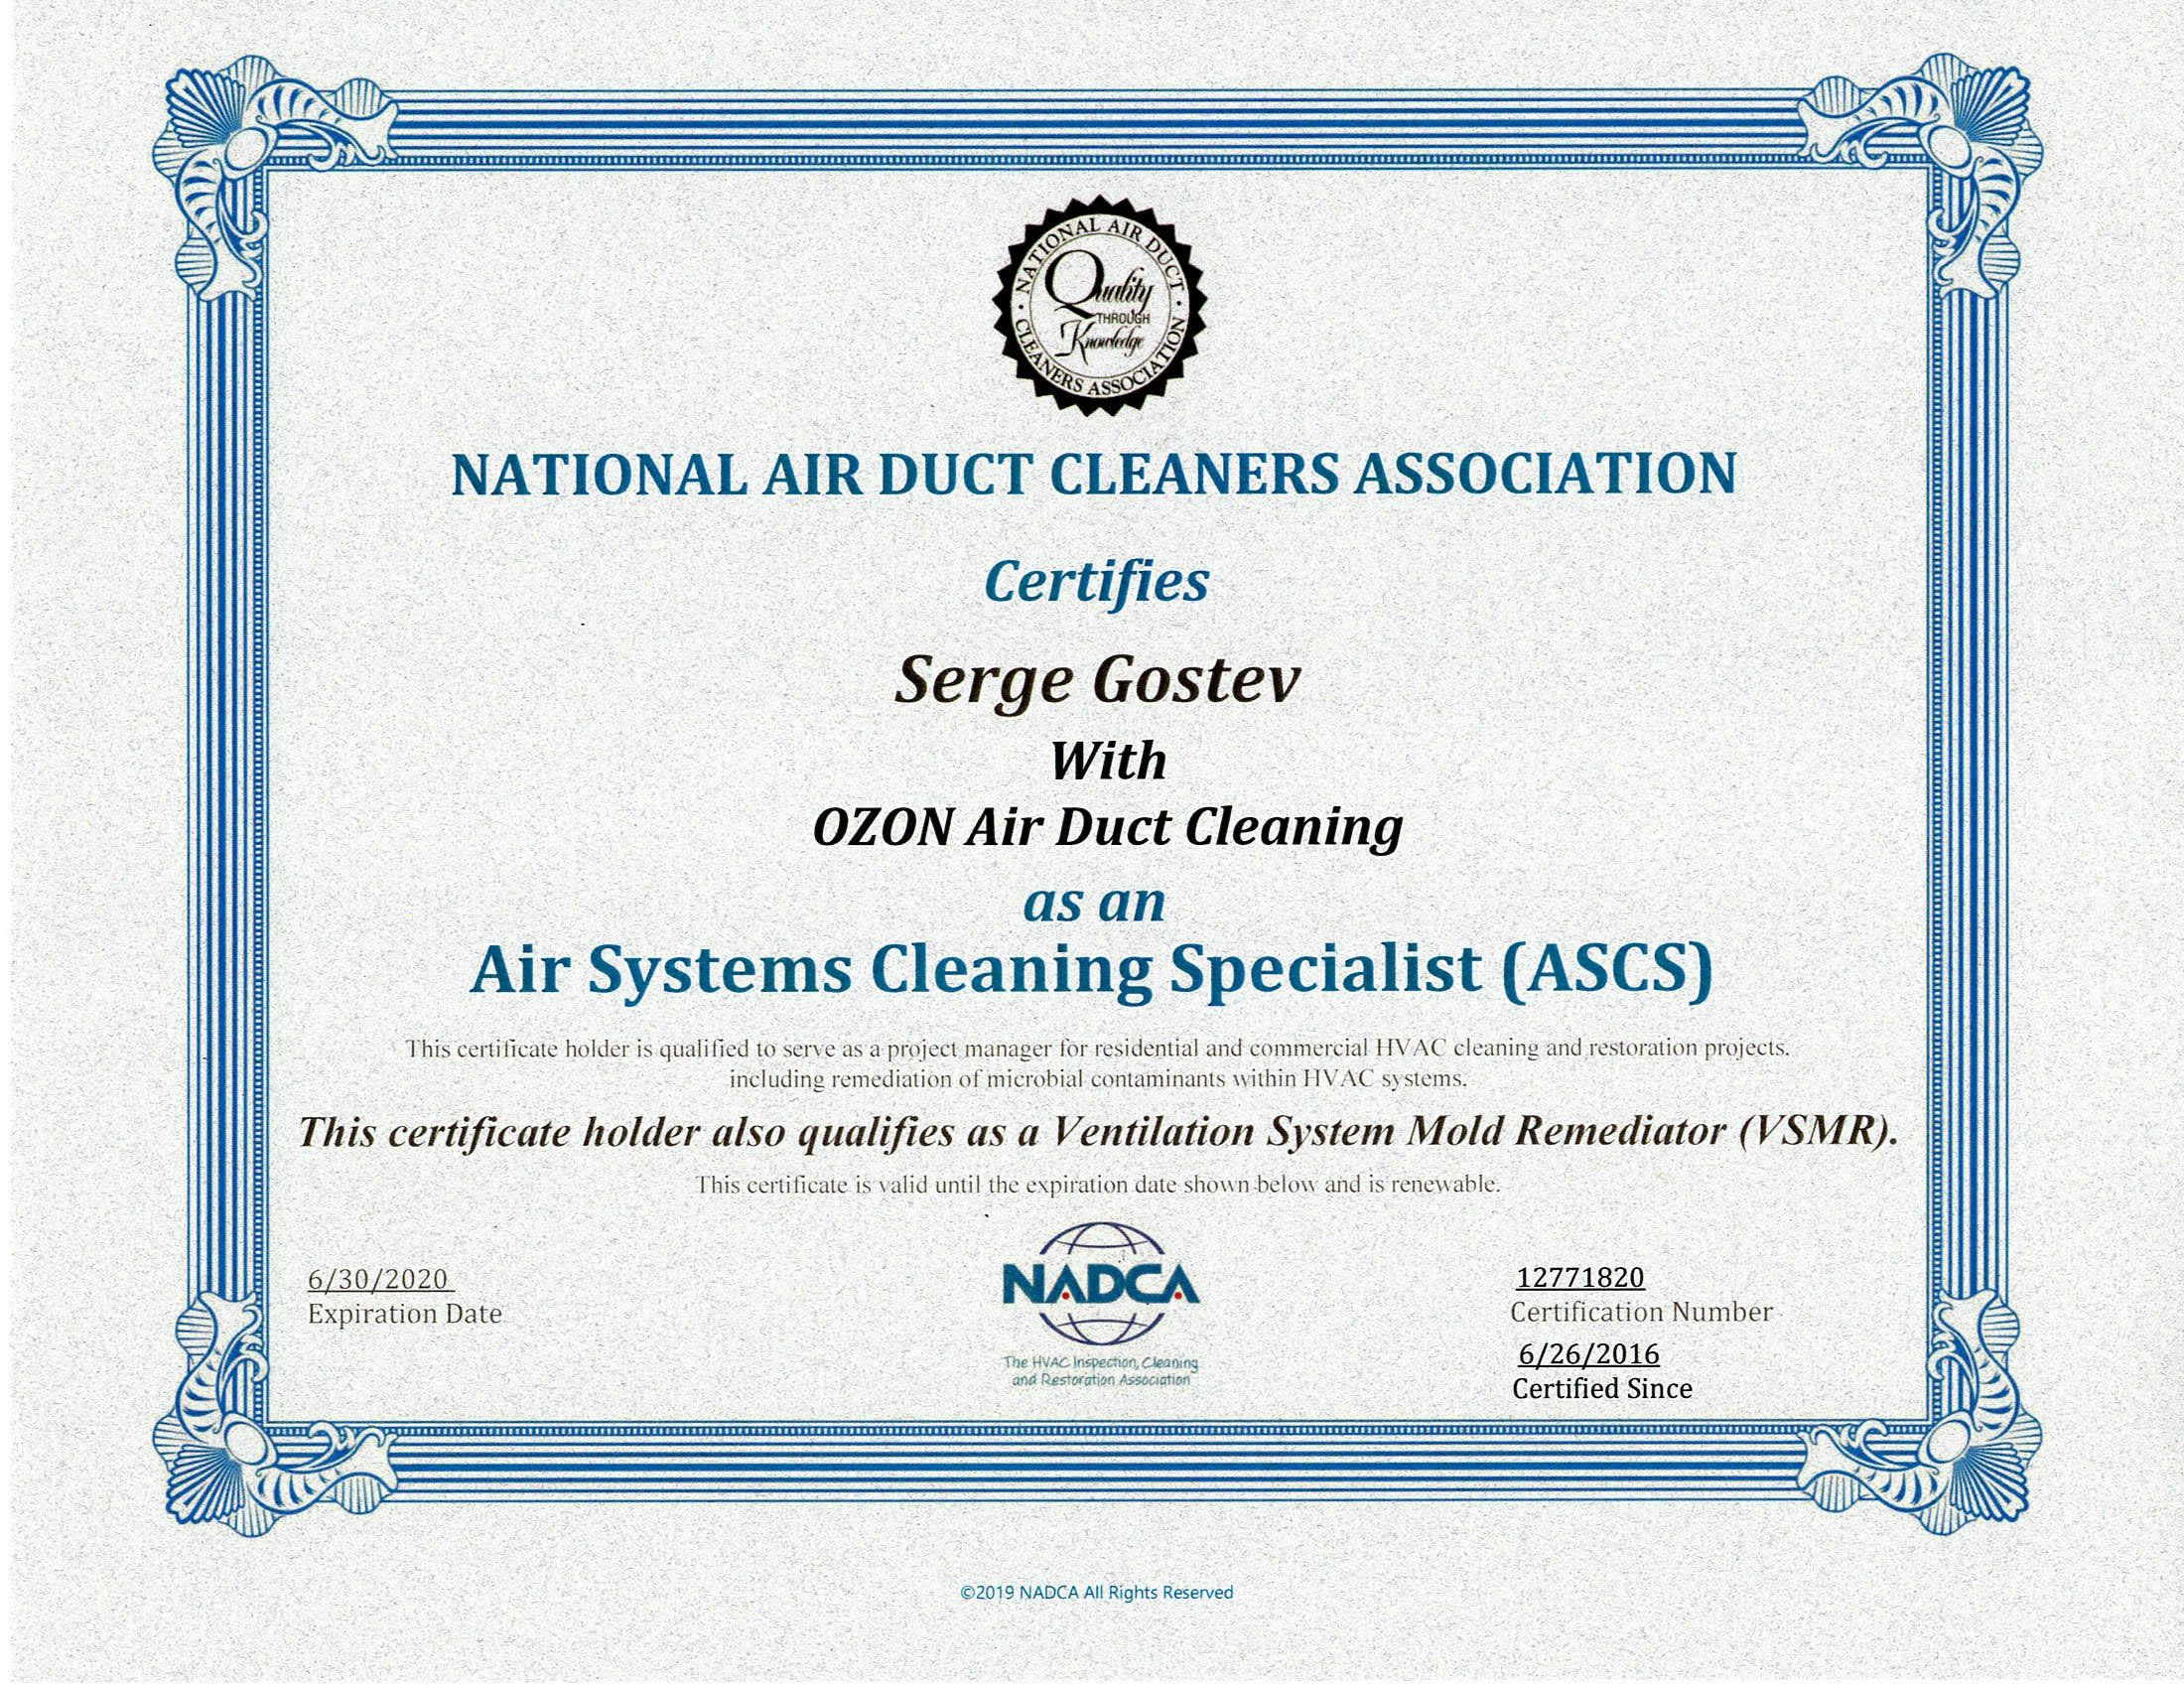 OZON Air Duct Cleaning is a NADCA member